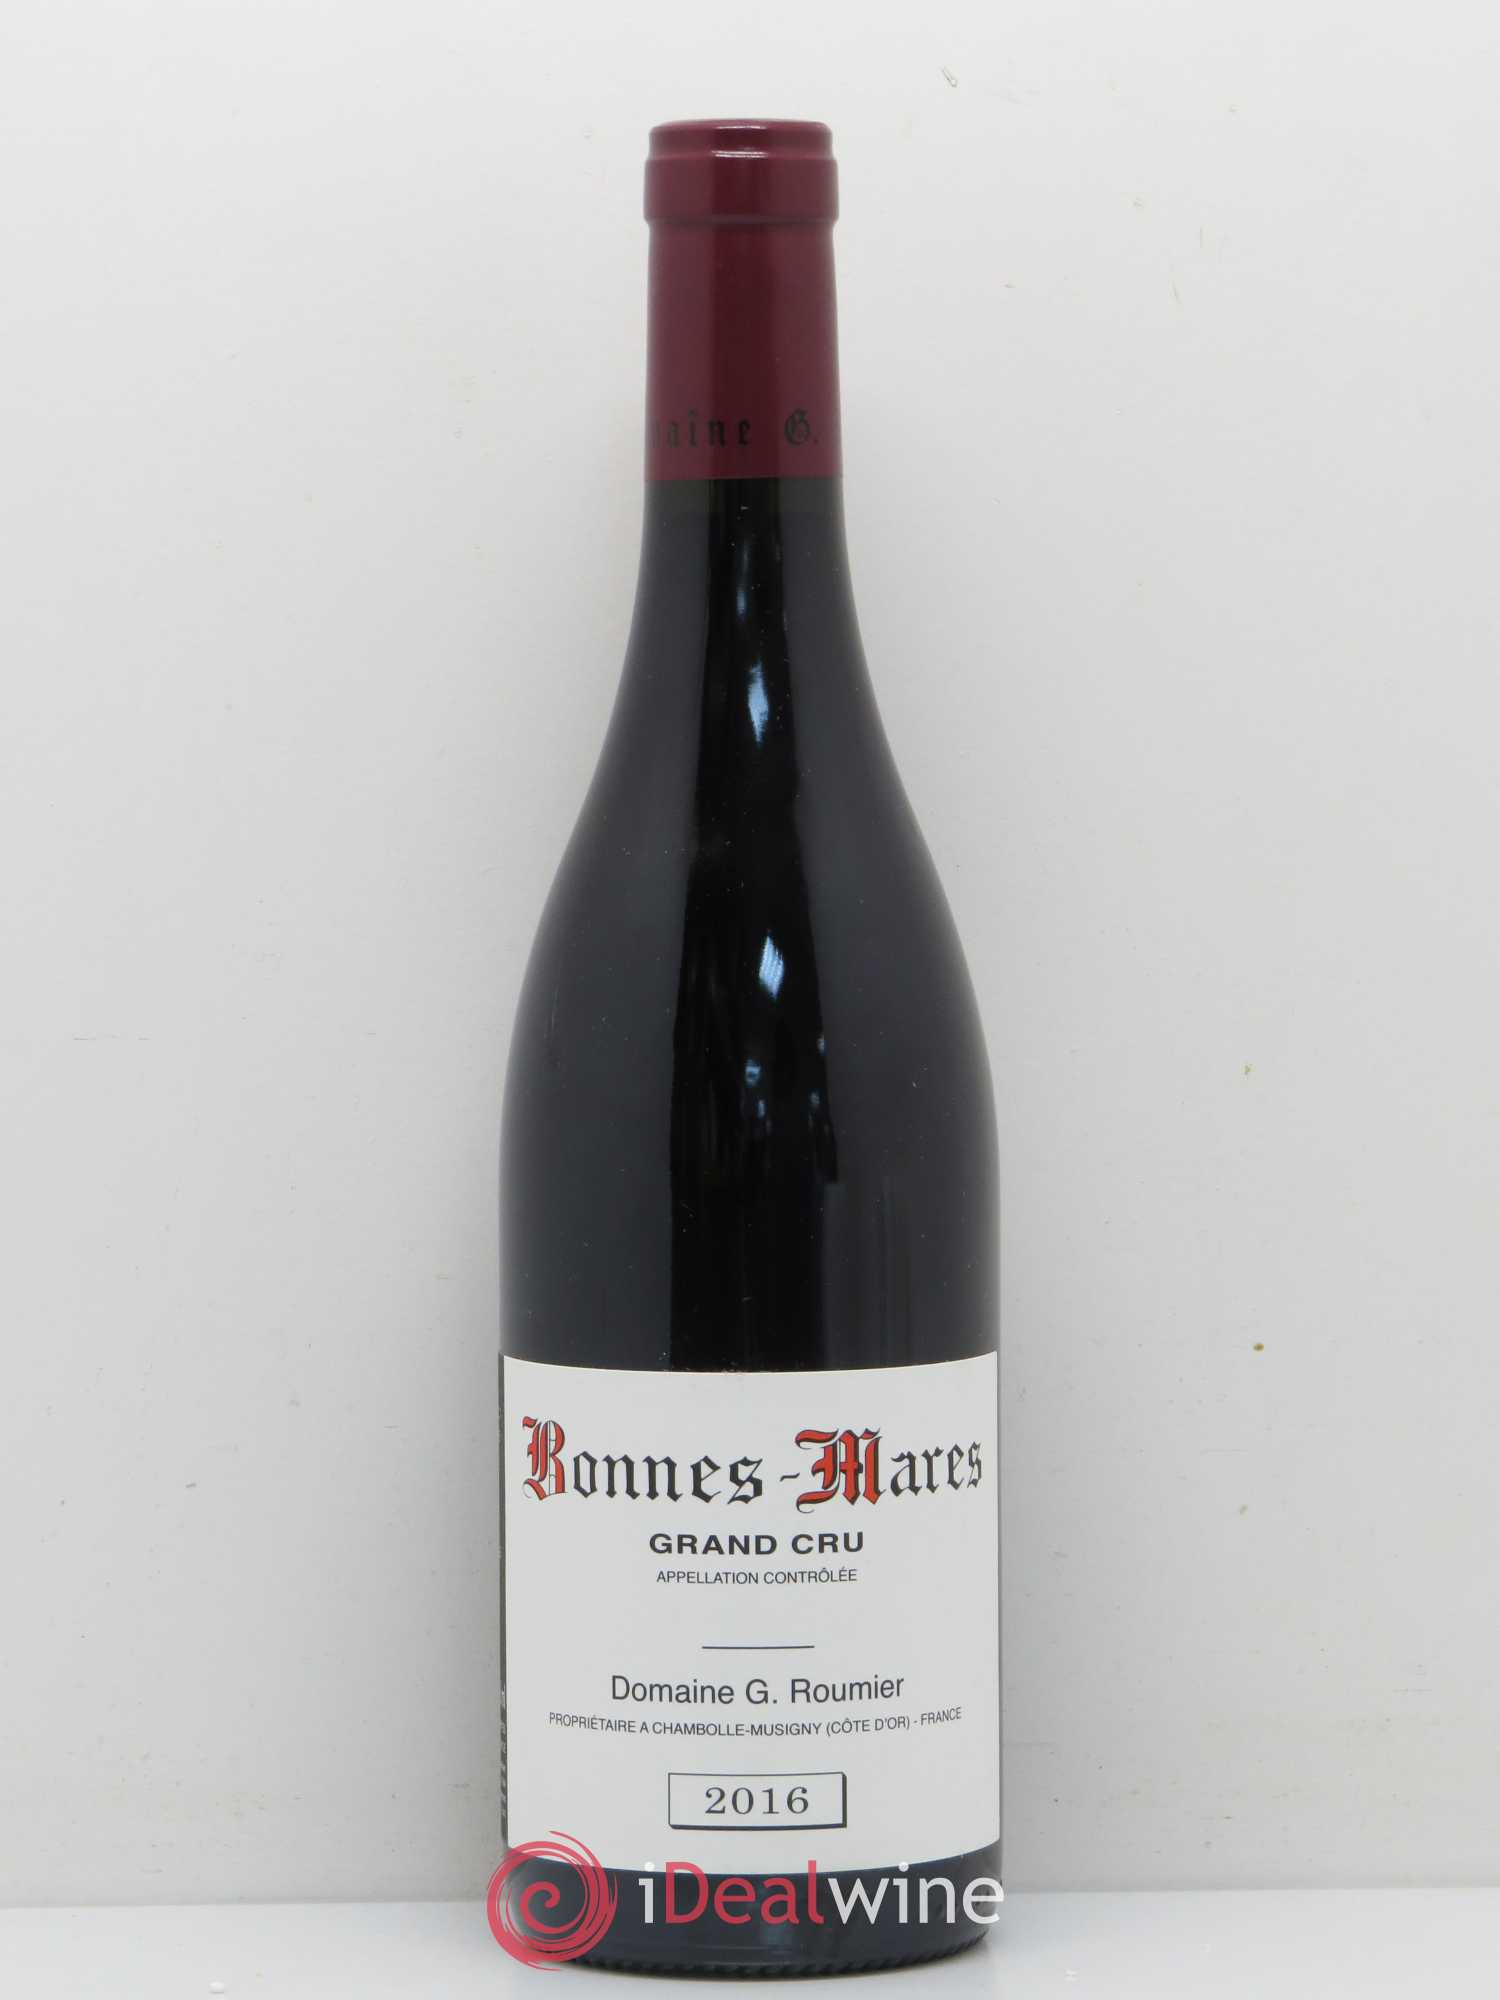 Bonnes-Mares Grand Cru Georges Roumier (Domaine)  2016 - Lot of 1 Bottle